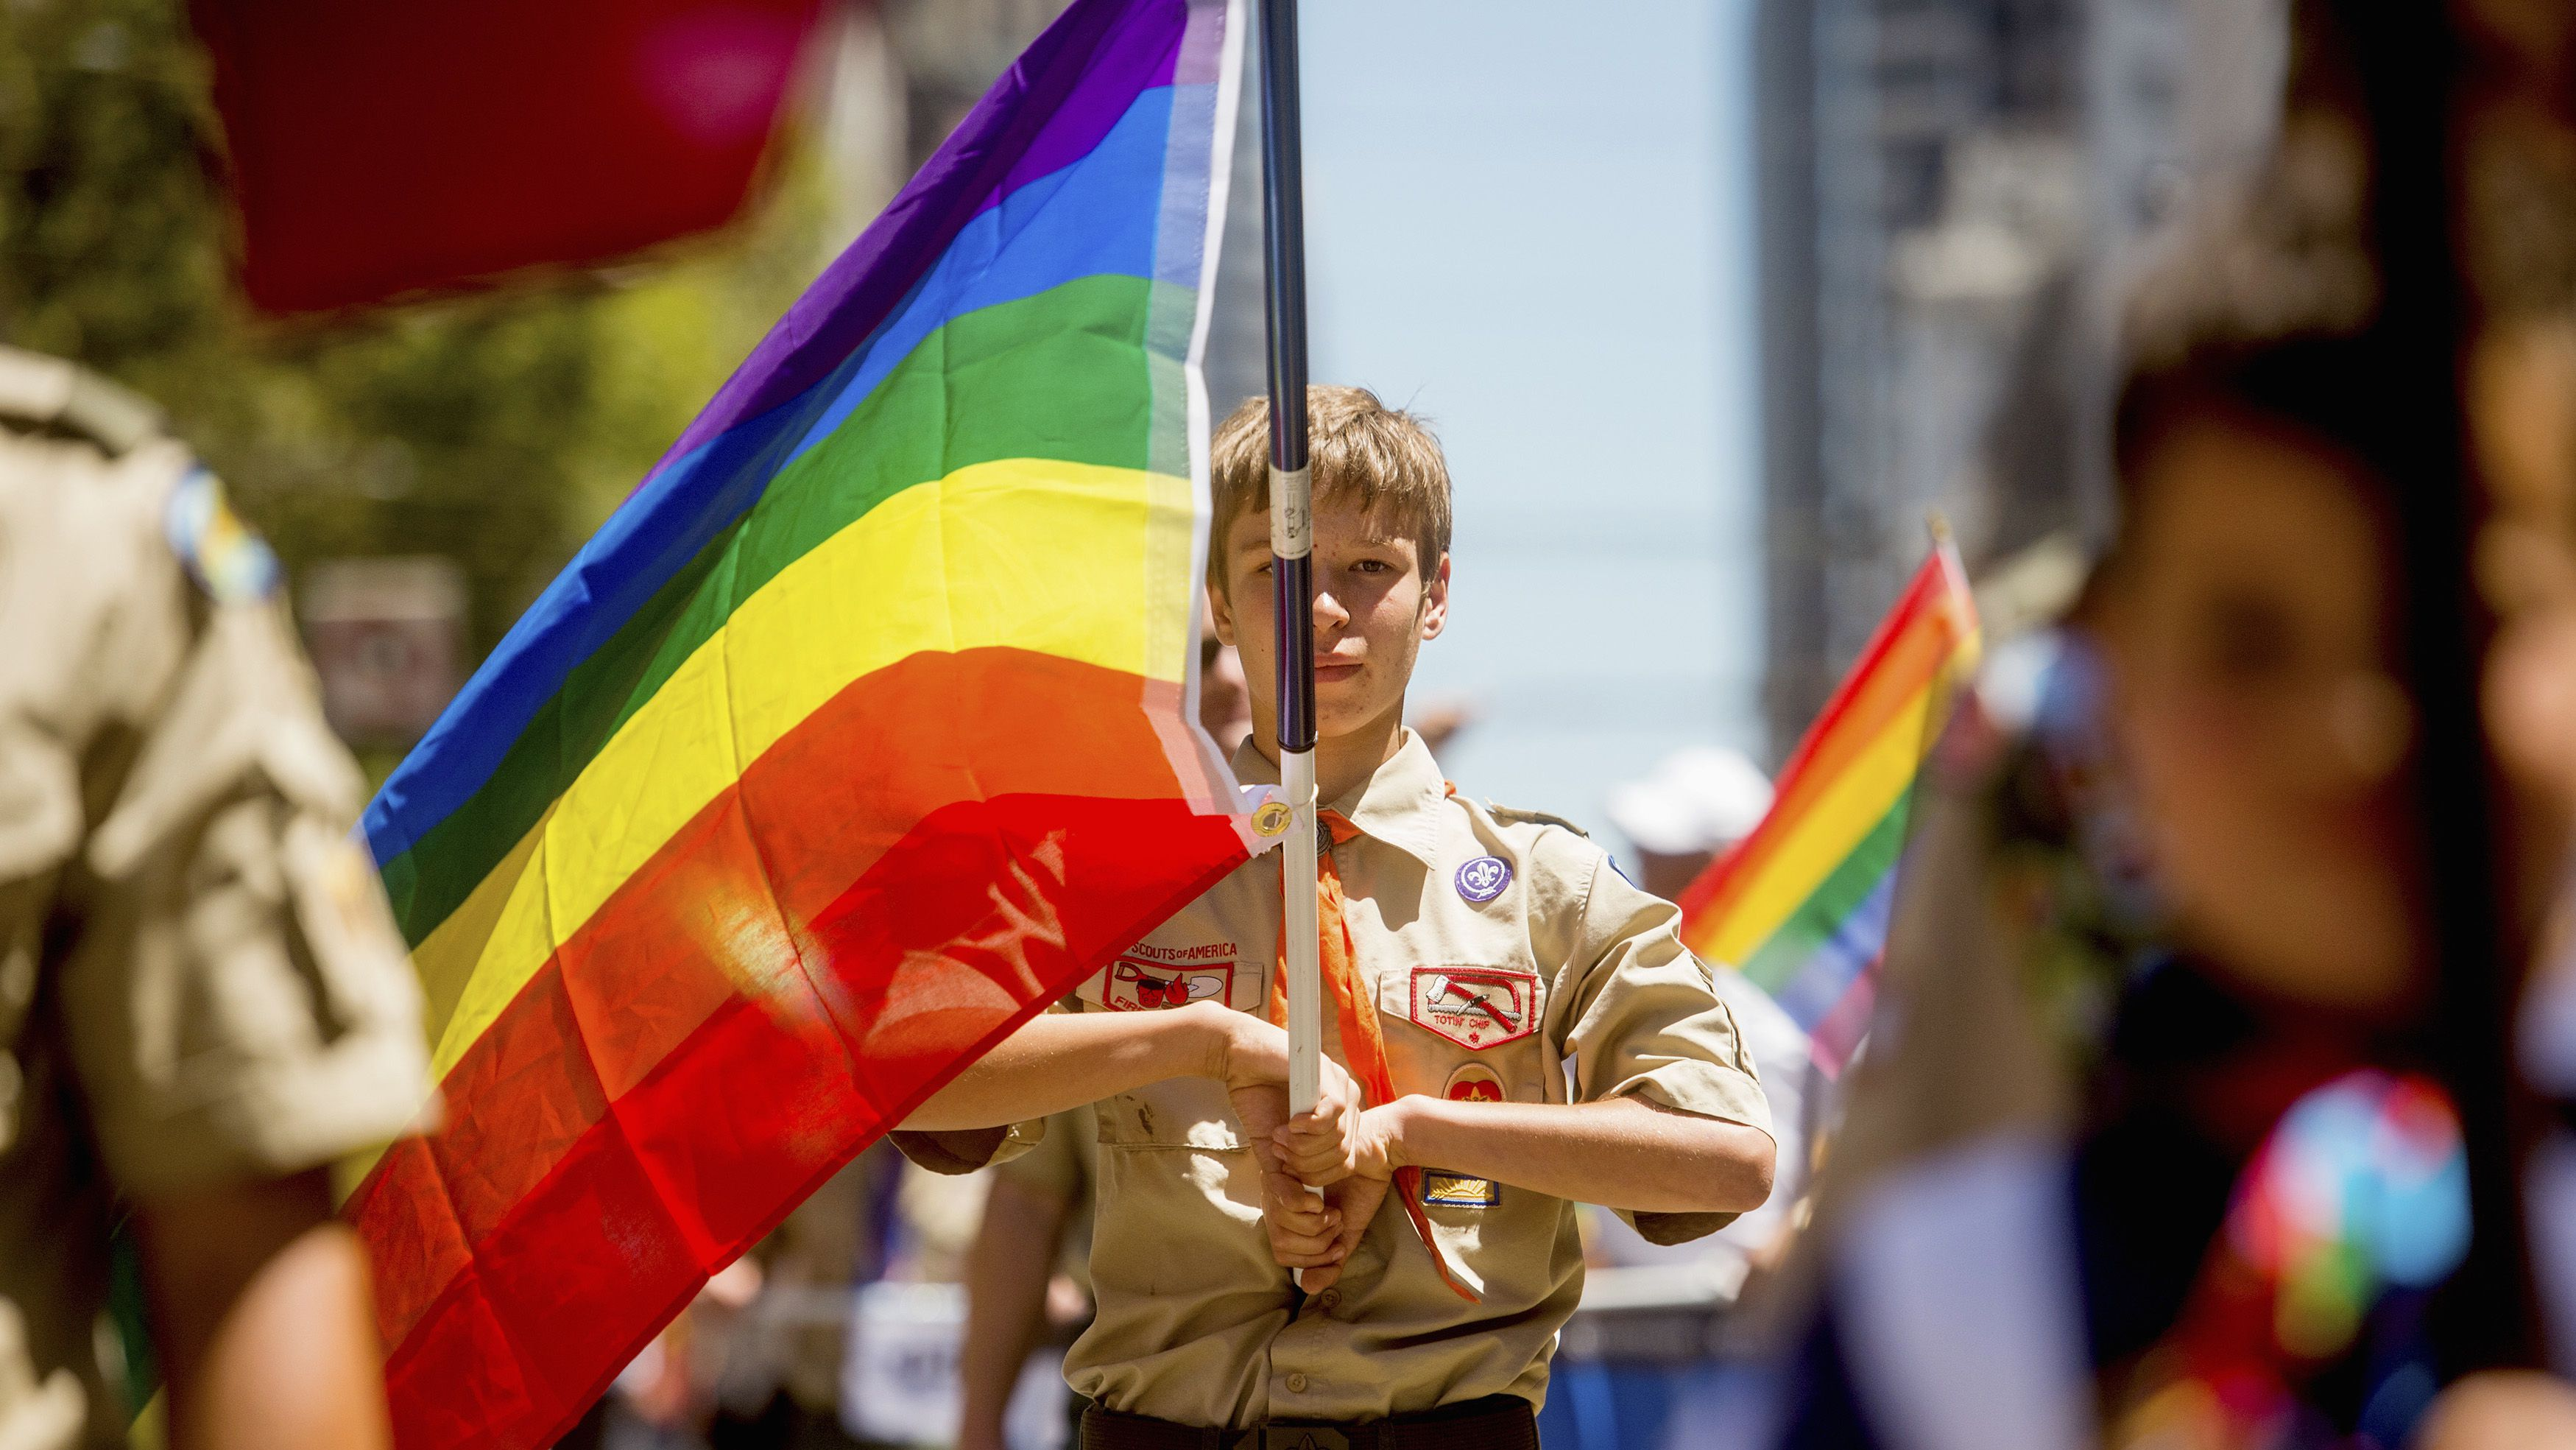 Boy Scout Casey Chambers carries a rainbow flag during the San Francisco Gay Pride Festival in California June 29, 2014. REUTERS/Noah Berger (UNITED STATES - Tags: SOCIETY TPX IMAGES OF THE DAY) - RTR3WCZI